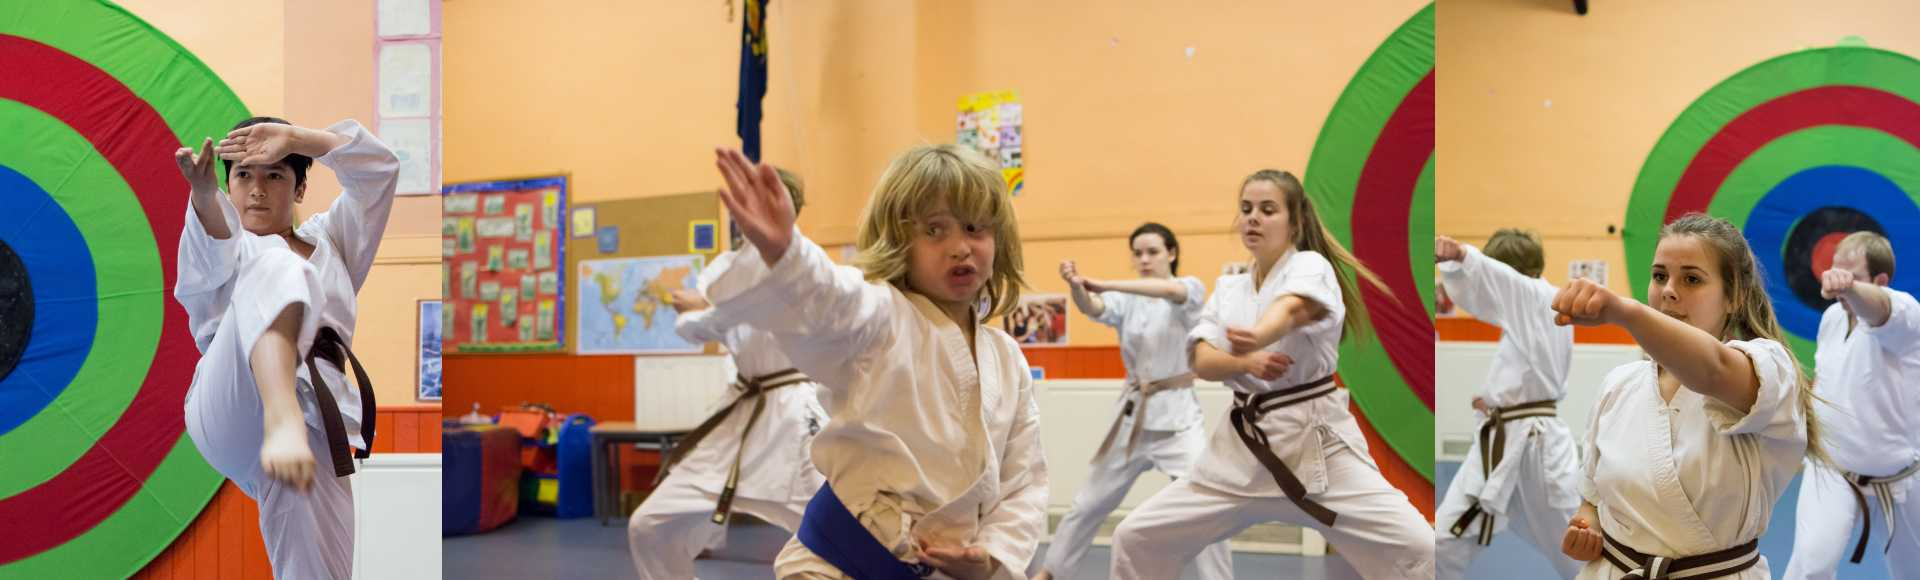 Thackley Shotokan Tigers Karate Club